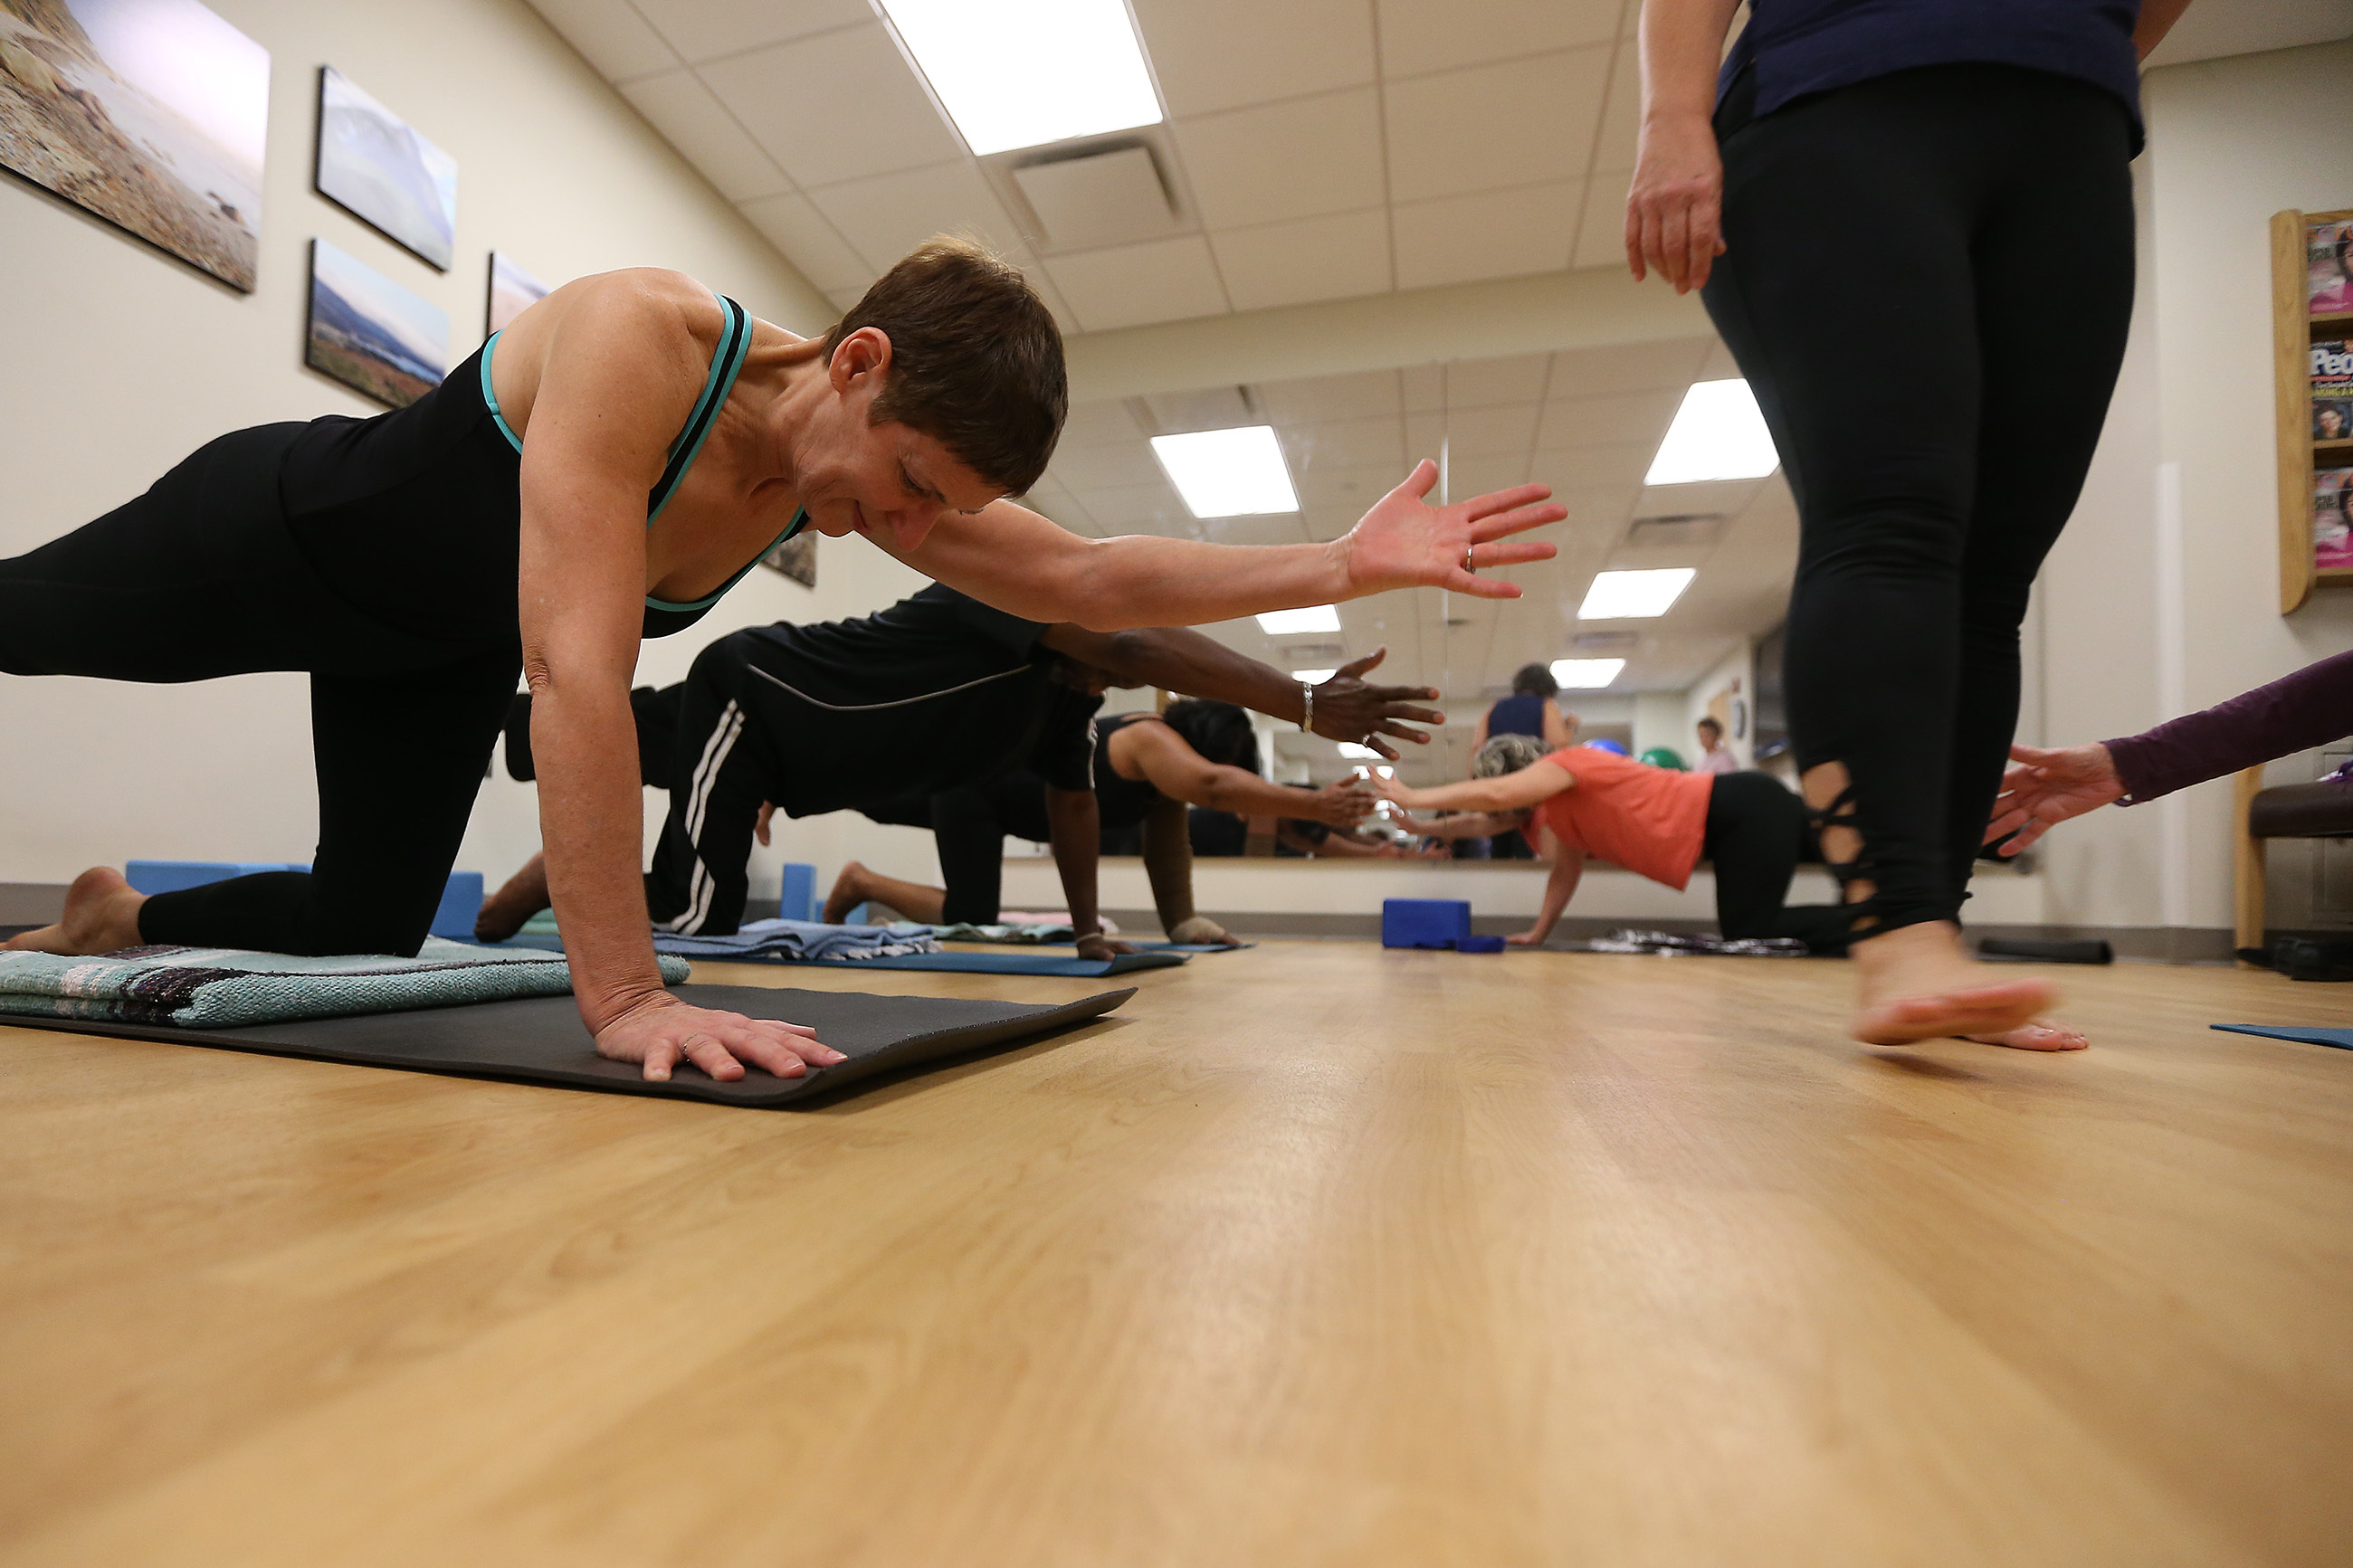 Jennifer Hook, 60, of West Philadelphia, moves into a pose during a yoga class at the Hospital of the University of Pennsylvania.